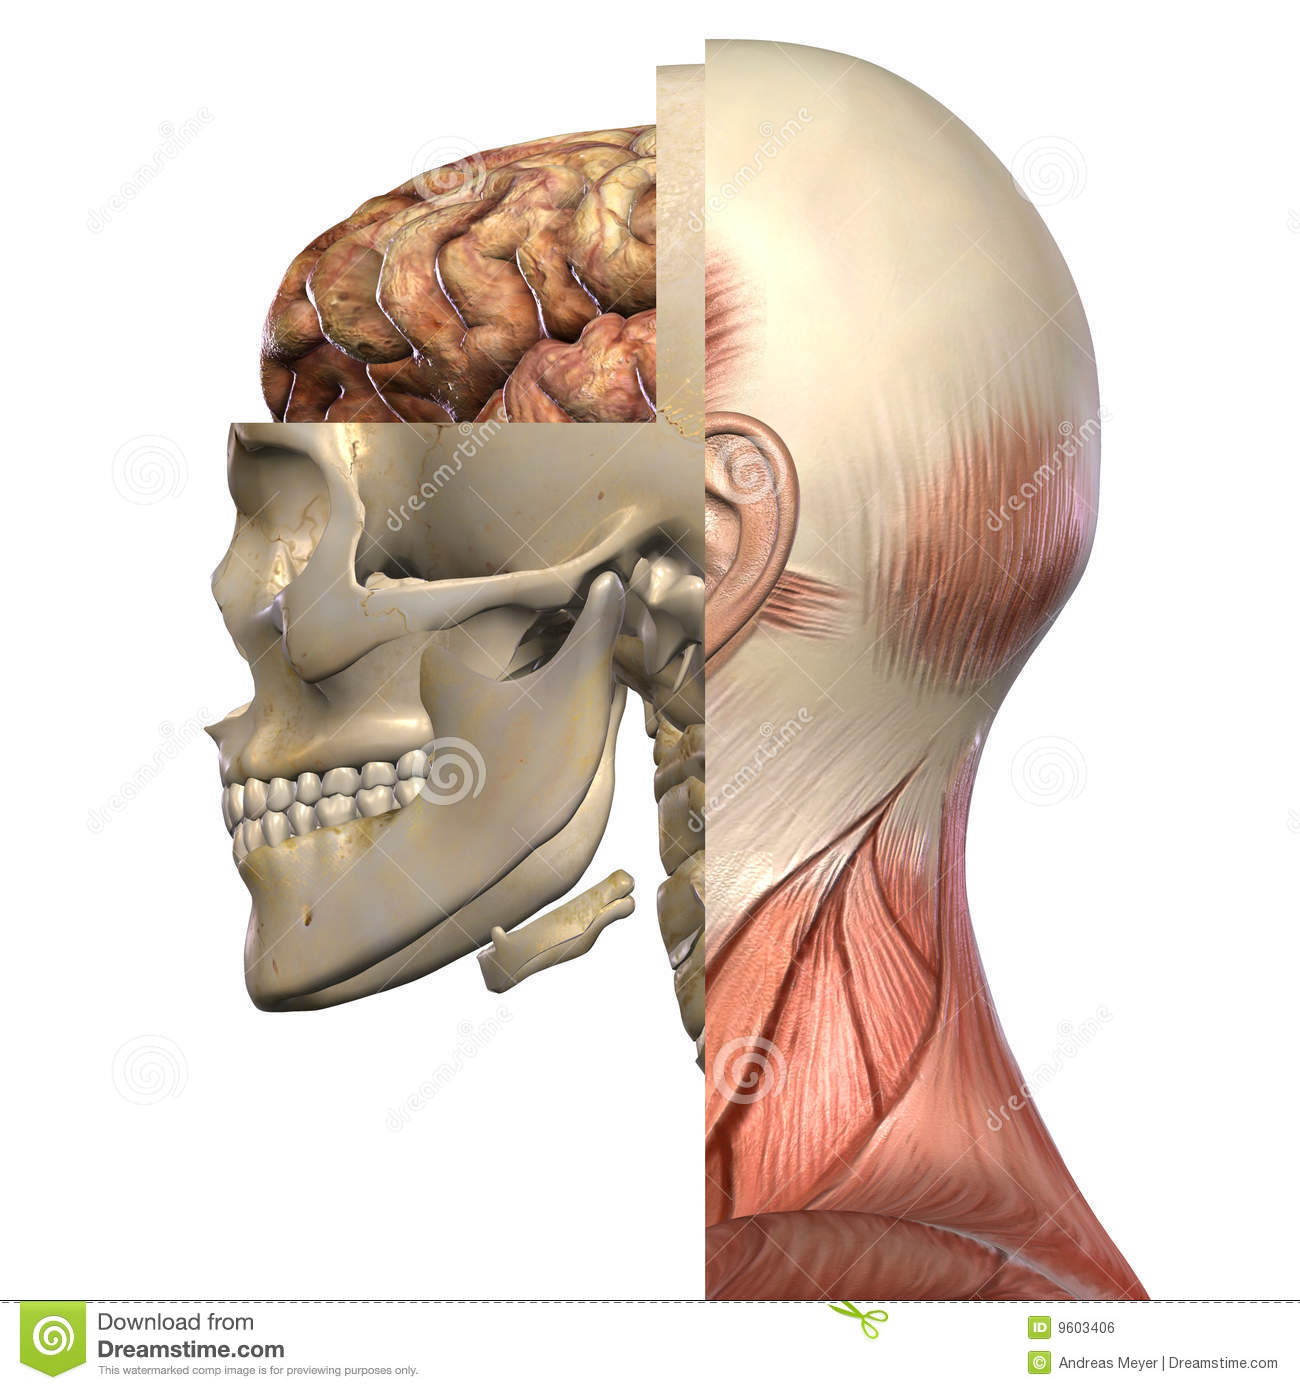 Female Anatomy Body stock illustration. Illustration of body - 9603406